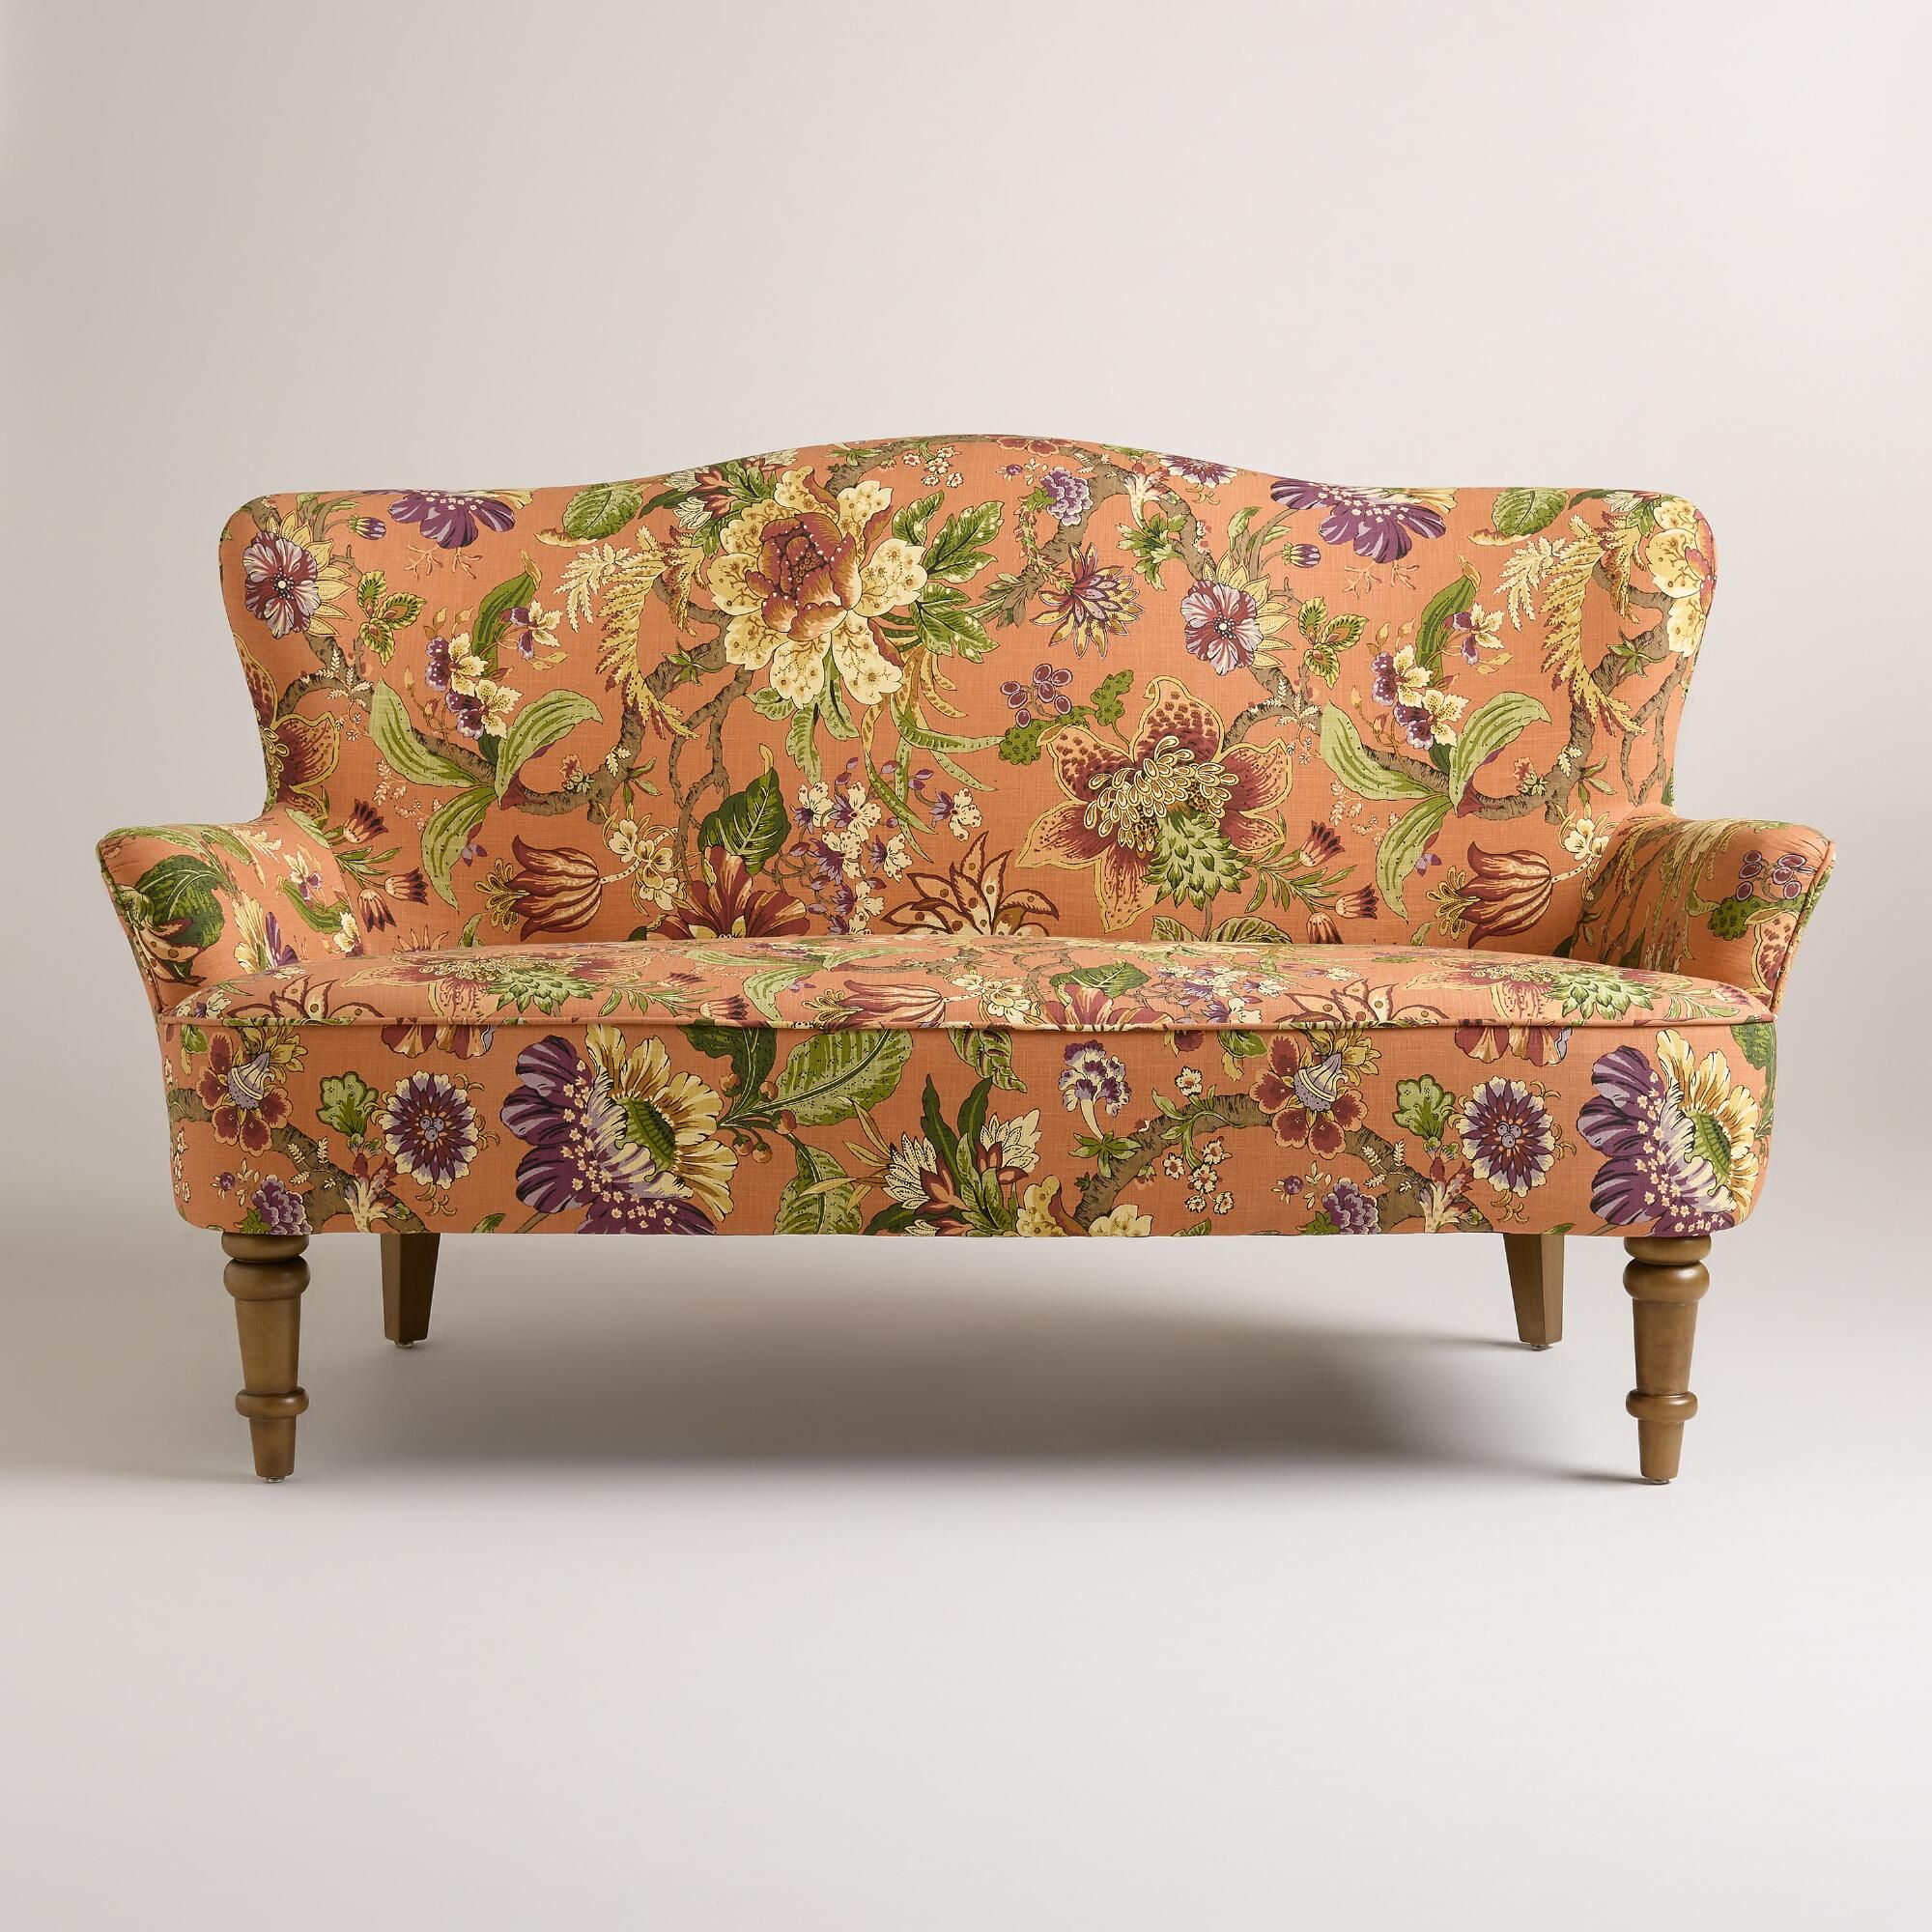 Ideal For Small Spaces Our Comfortable Vintage Inspired